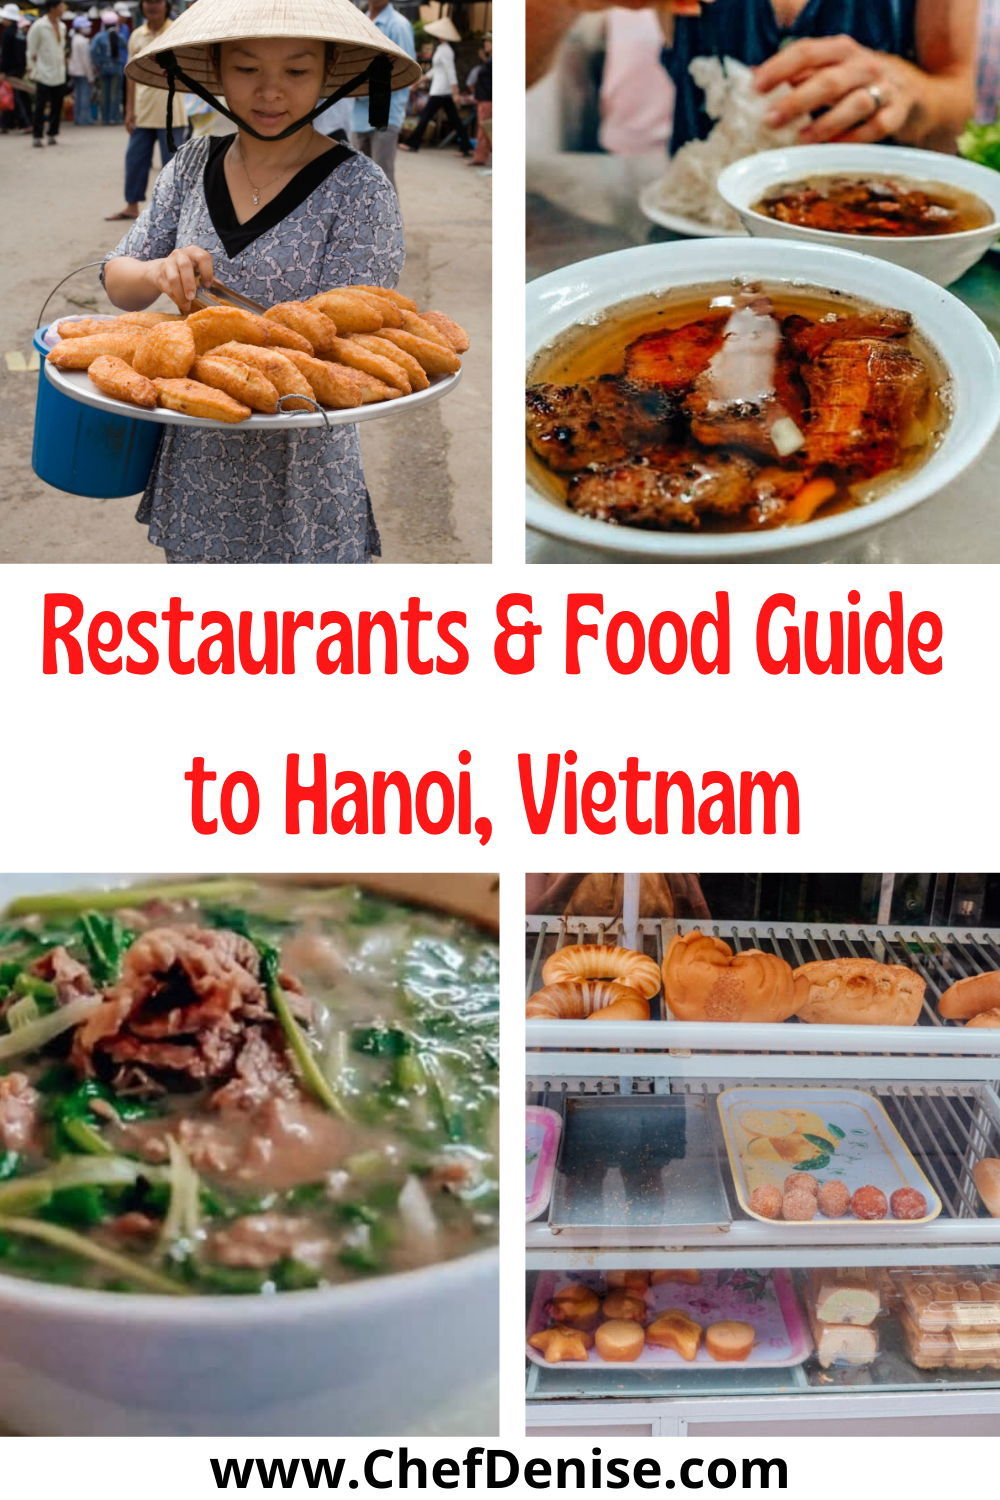 Pin for restaurants and food in Hanoi, Vietnam